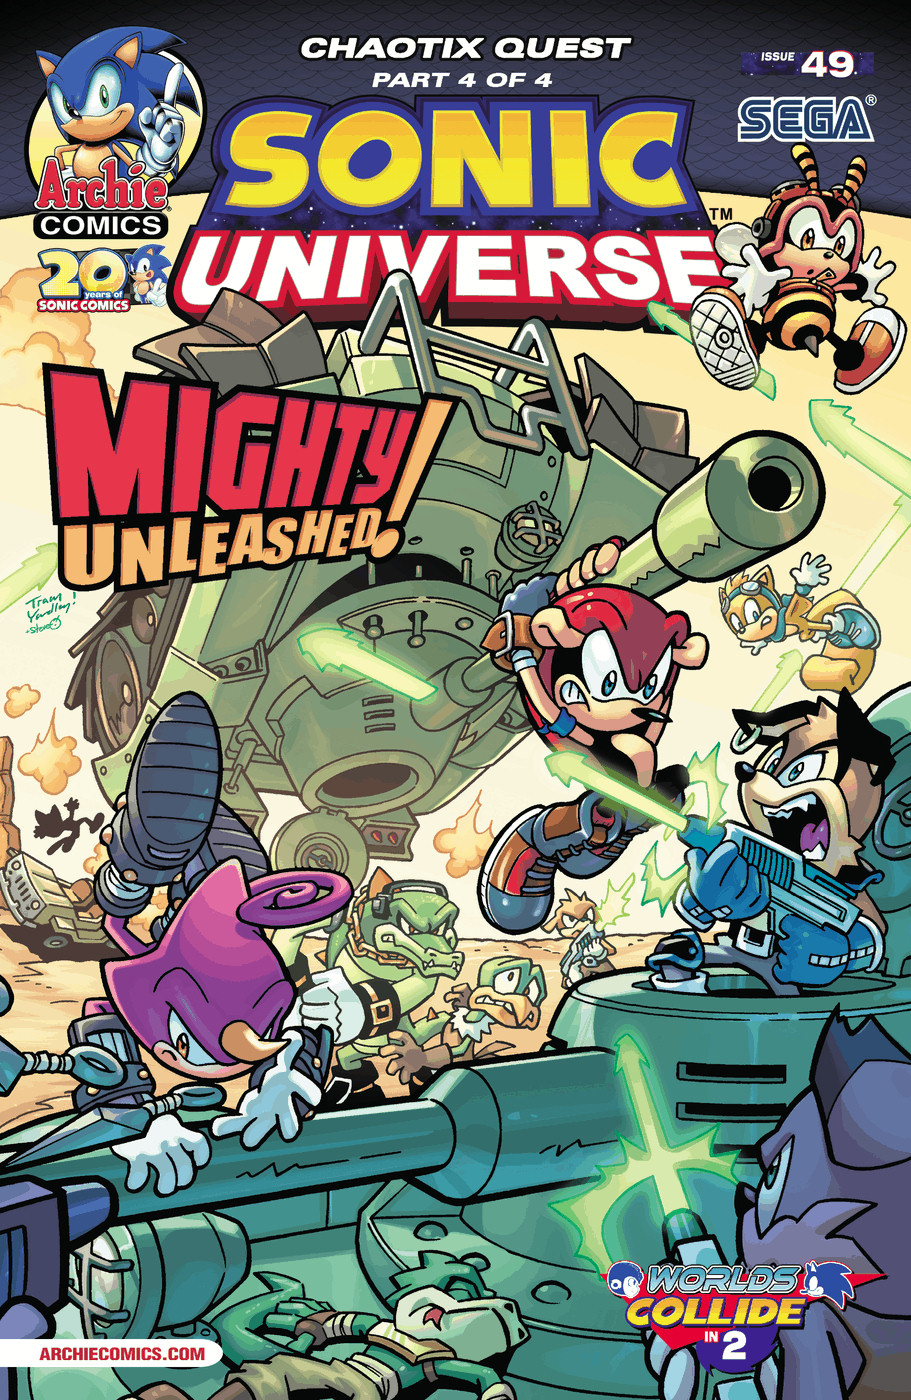 sonic universe issue 49 read full comics online for free